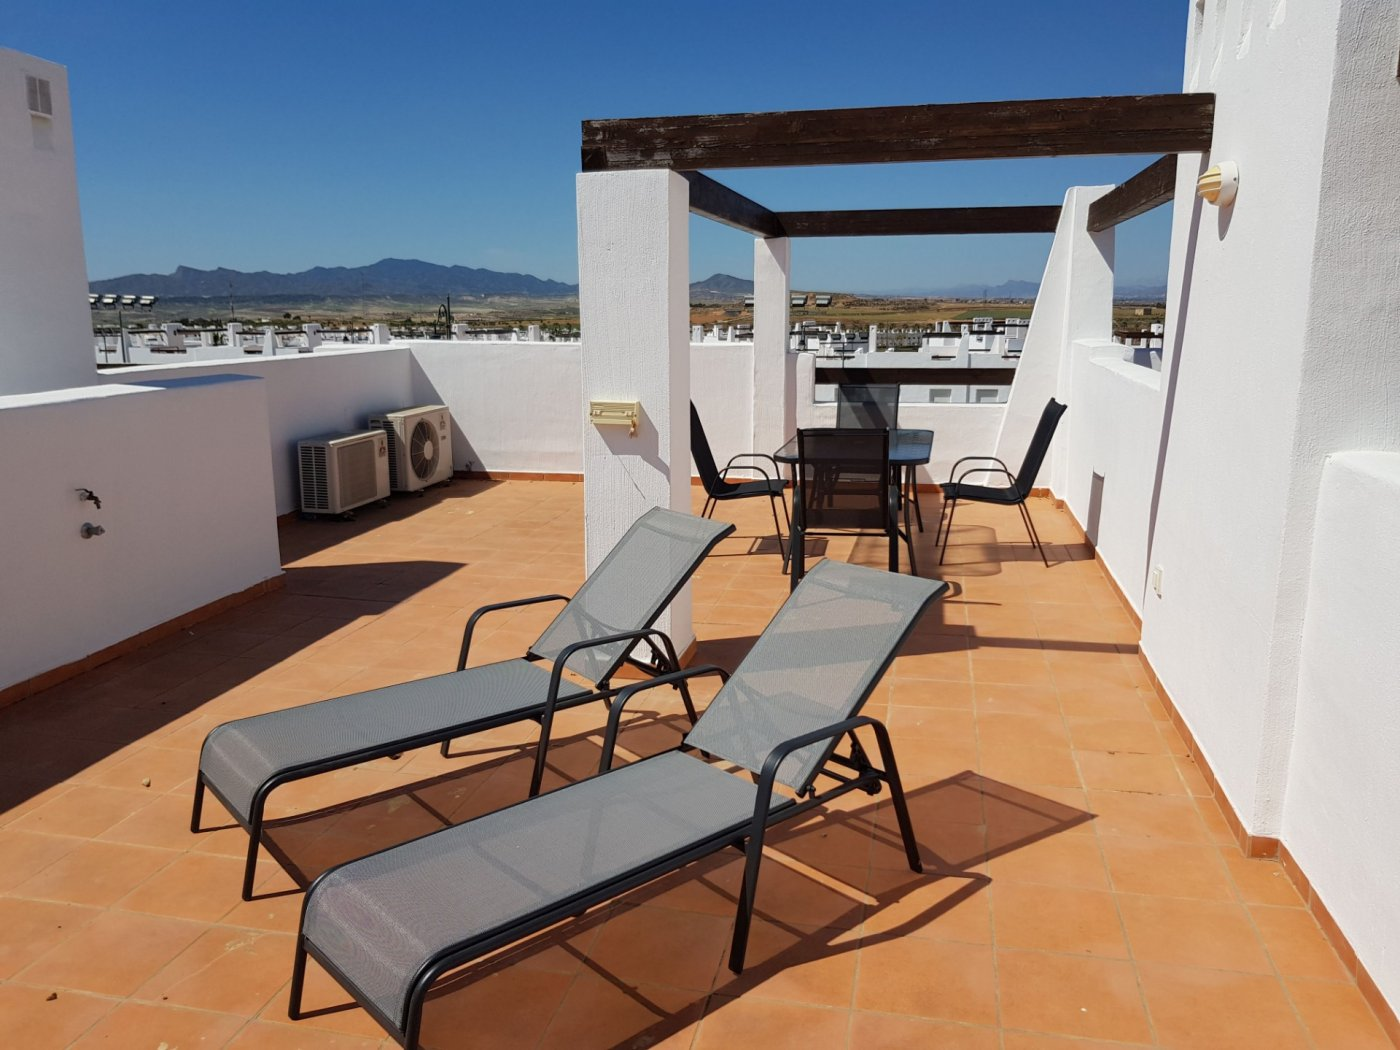 Image 1 Apartment ref 3265-02656 for rent in Condado De Alhama Spain - Quality Homes Costa Cálida